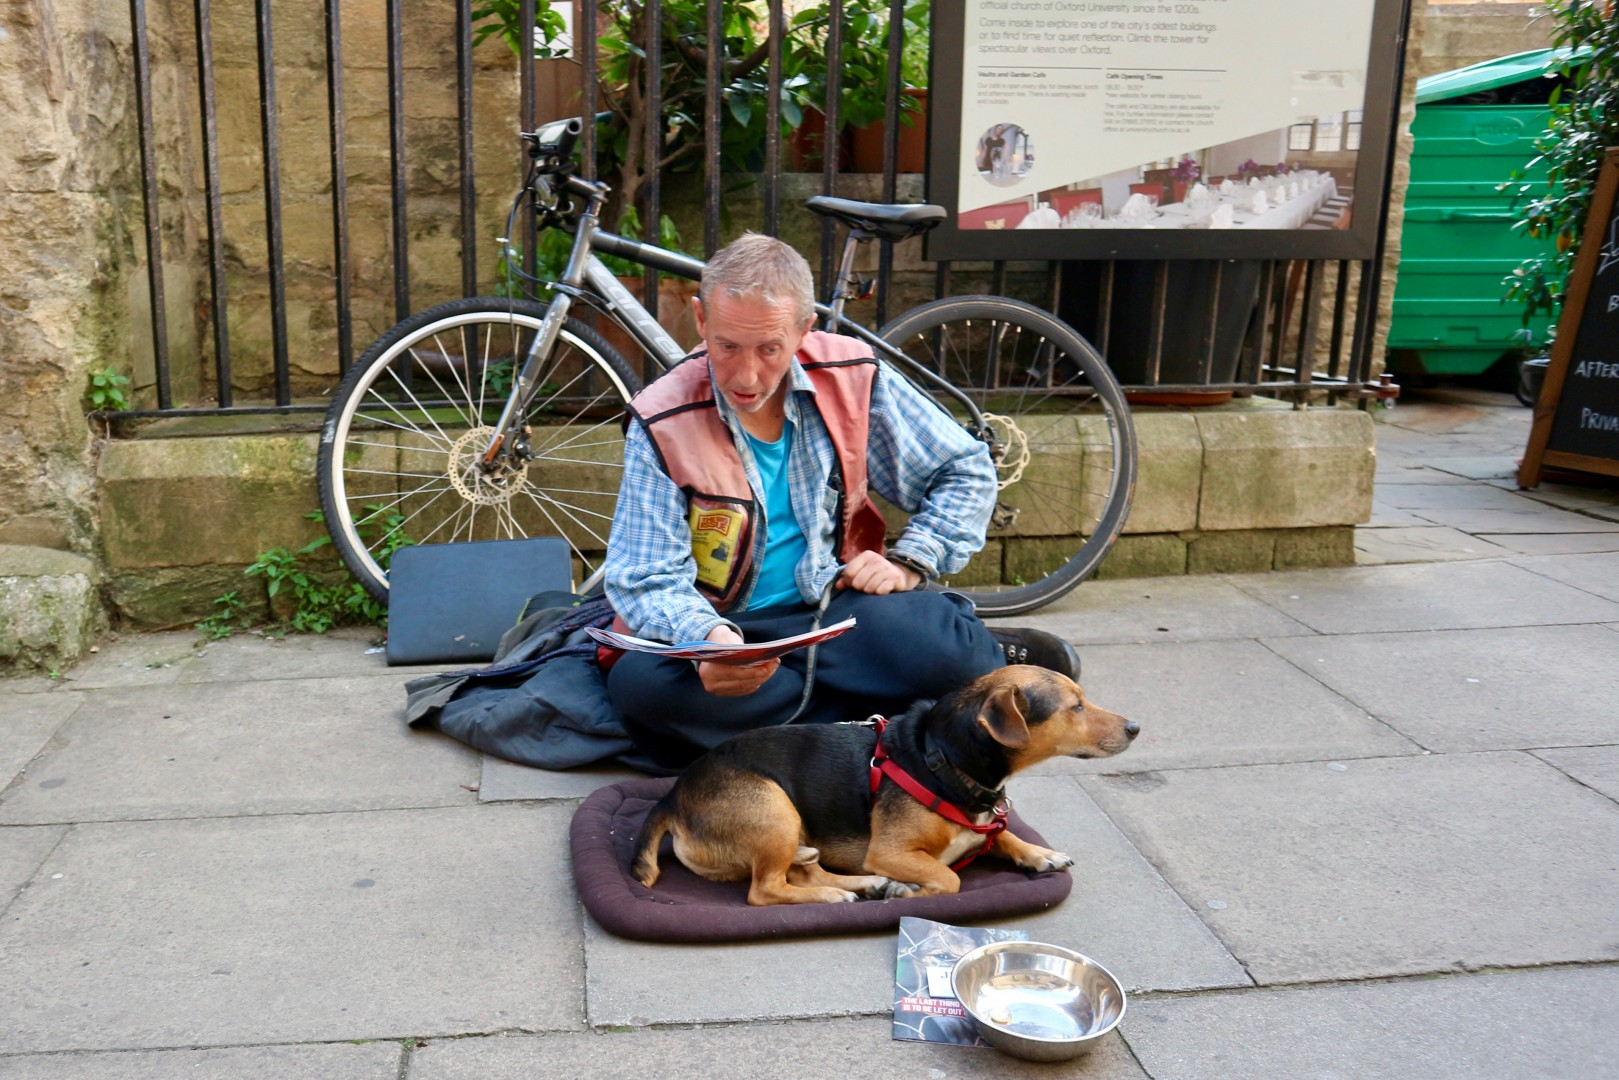 Oxford England 25 August 2017 A homeless sitting at street with his dog